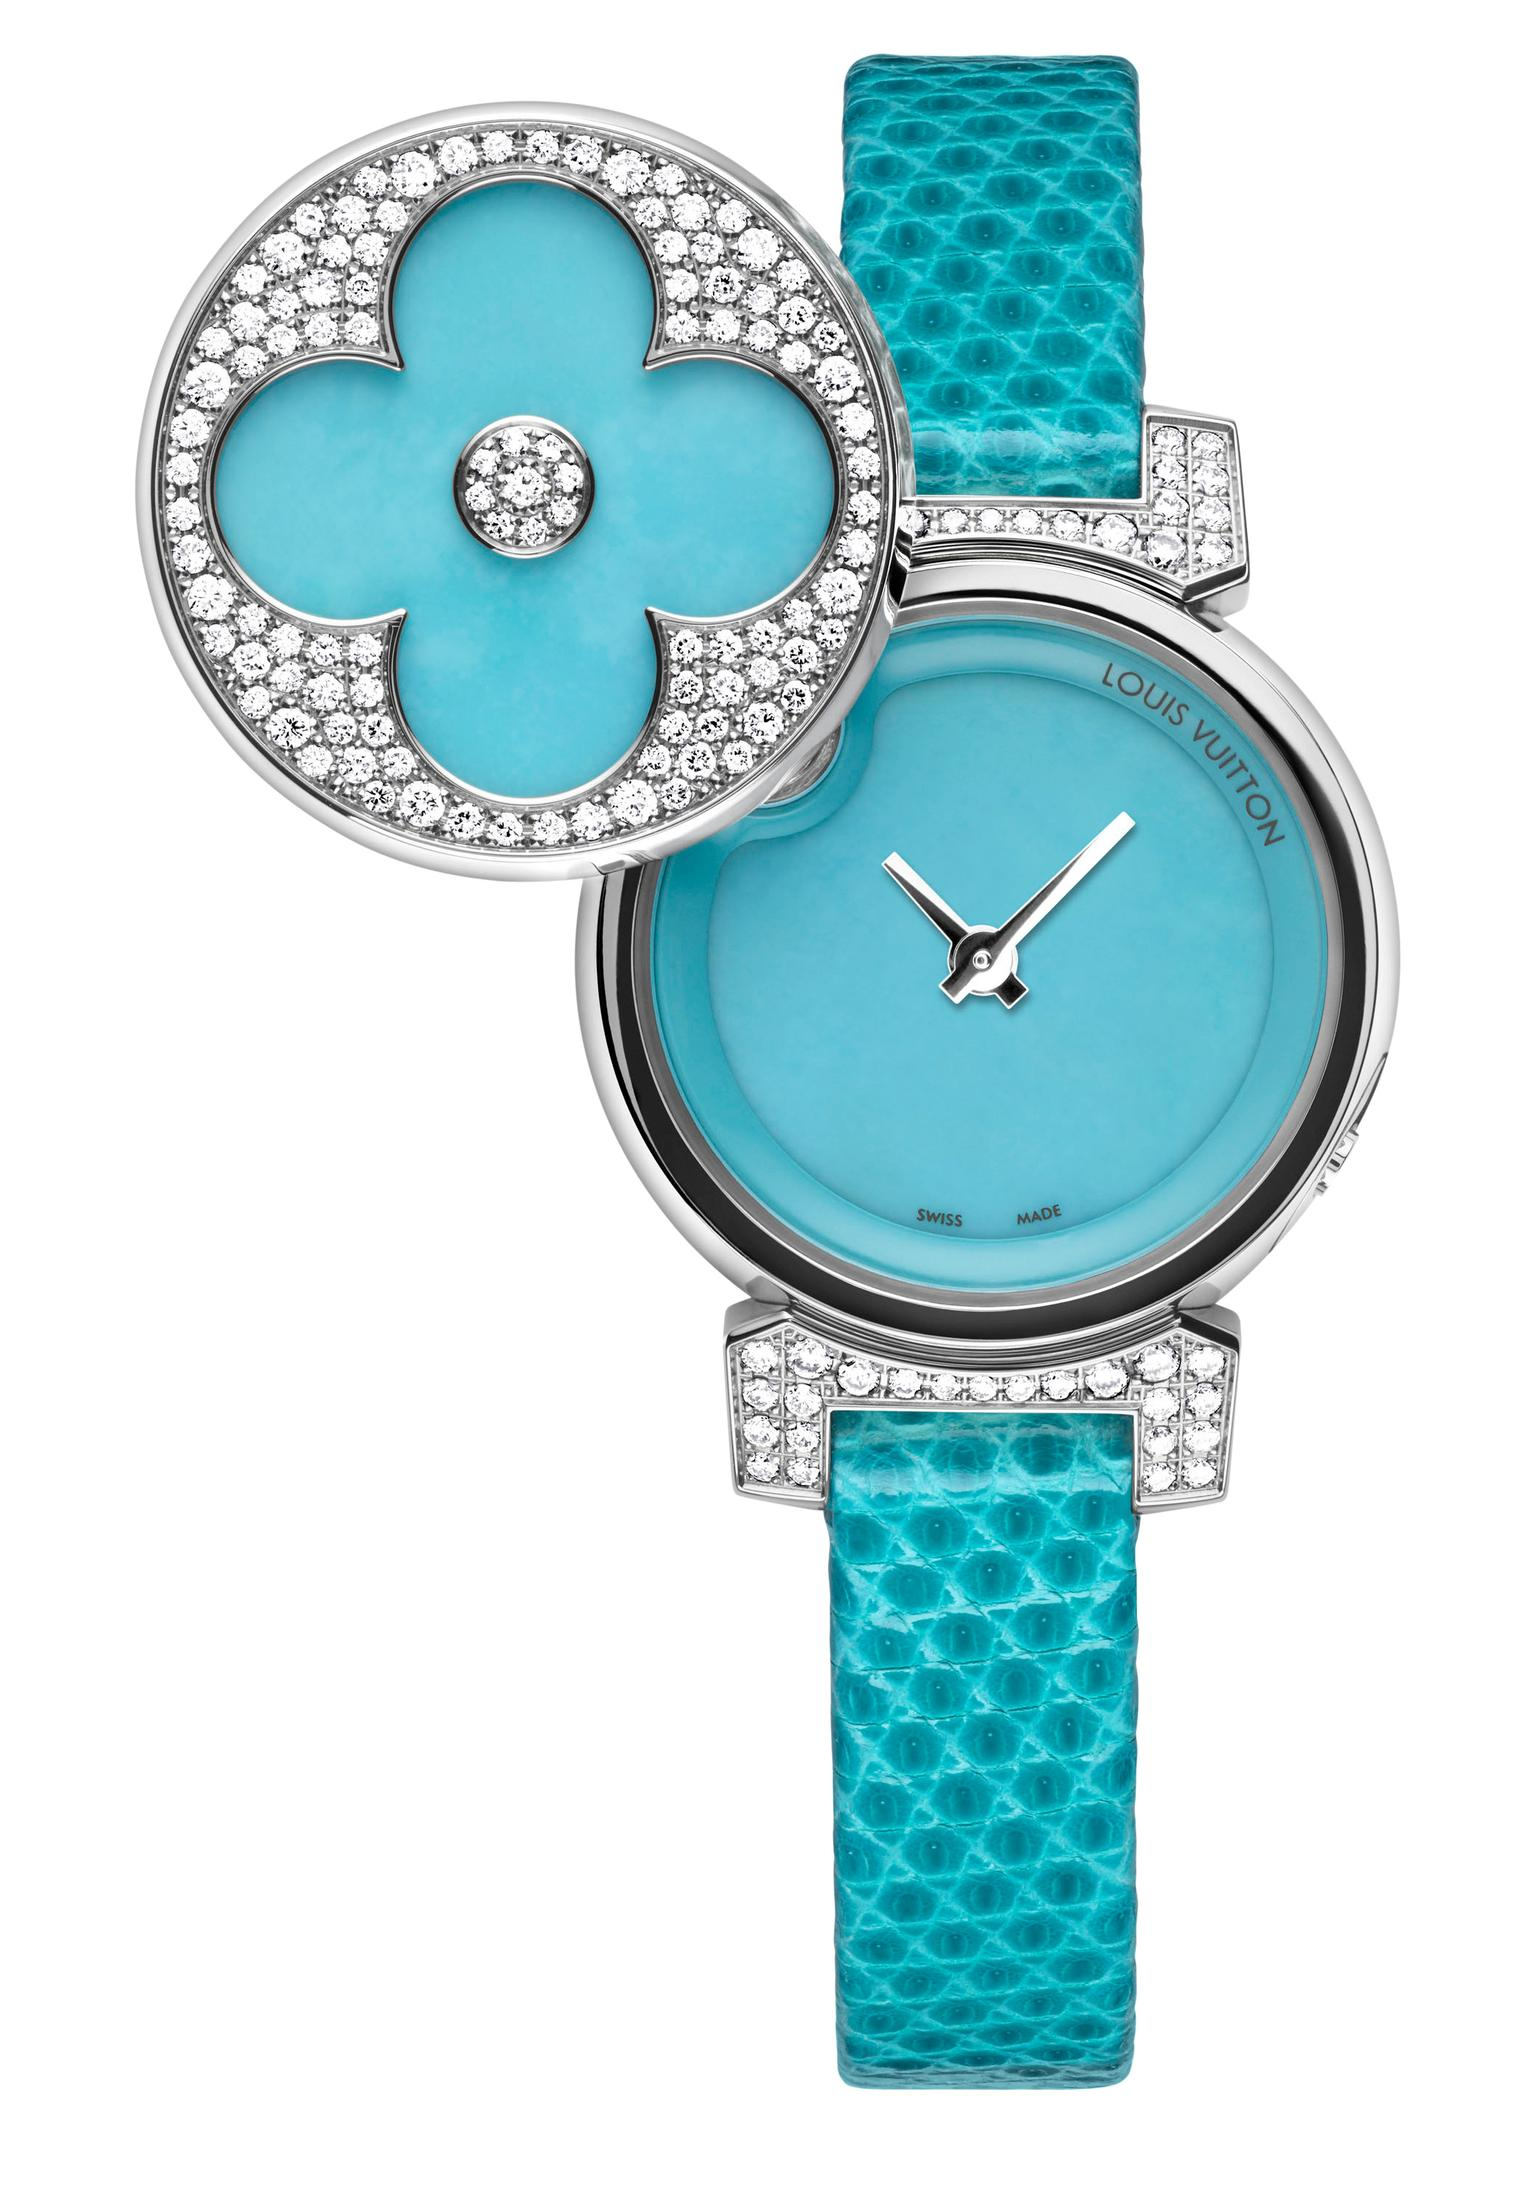 Louis Vuitton Tambour Bijou Secret watch_20130613_Zoom